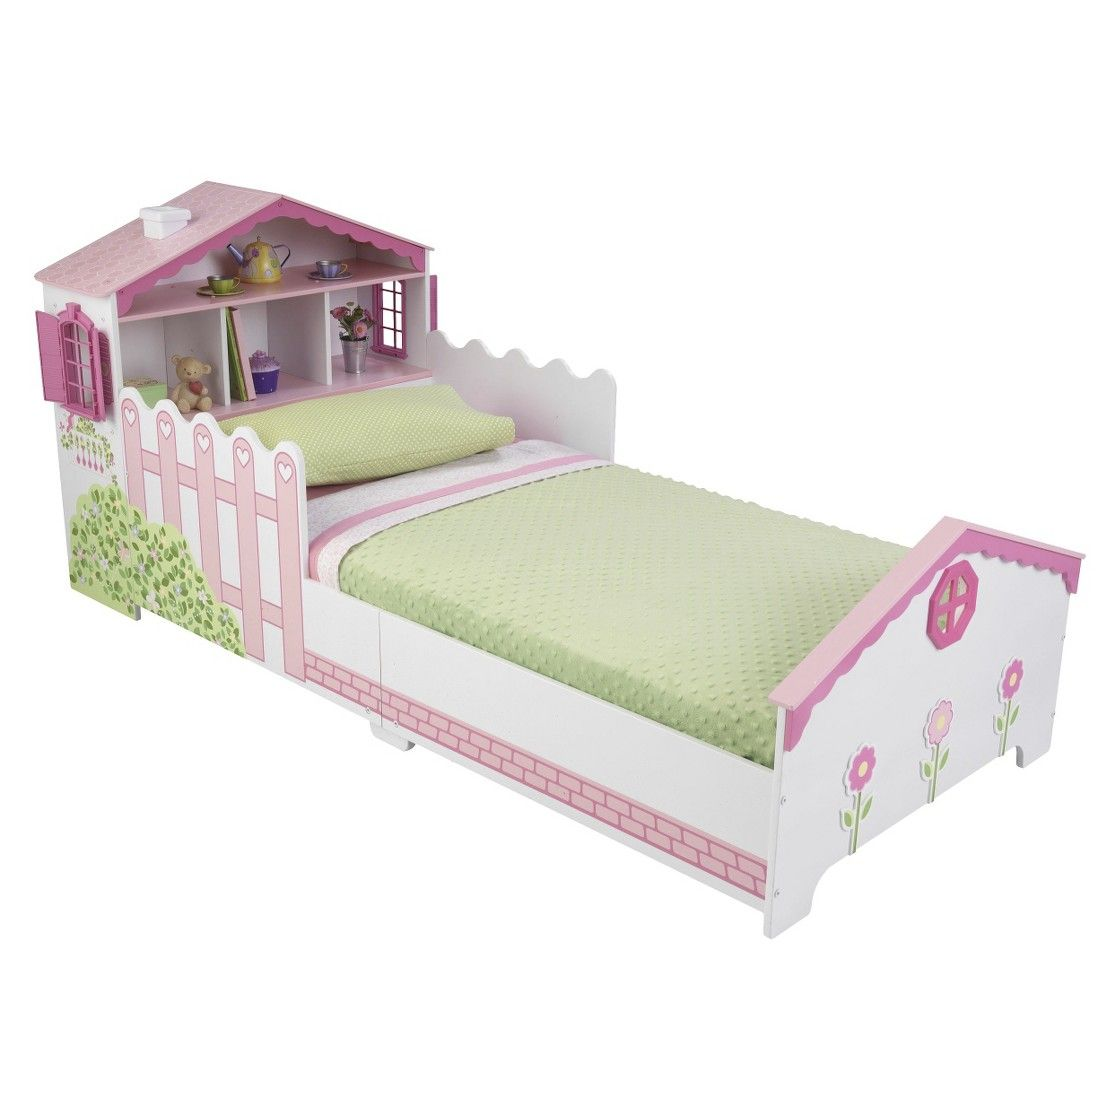 Toddler Dollhouse Kidkraft Dollhouse Toddler Bed Pink And White Lilys Room